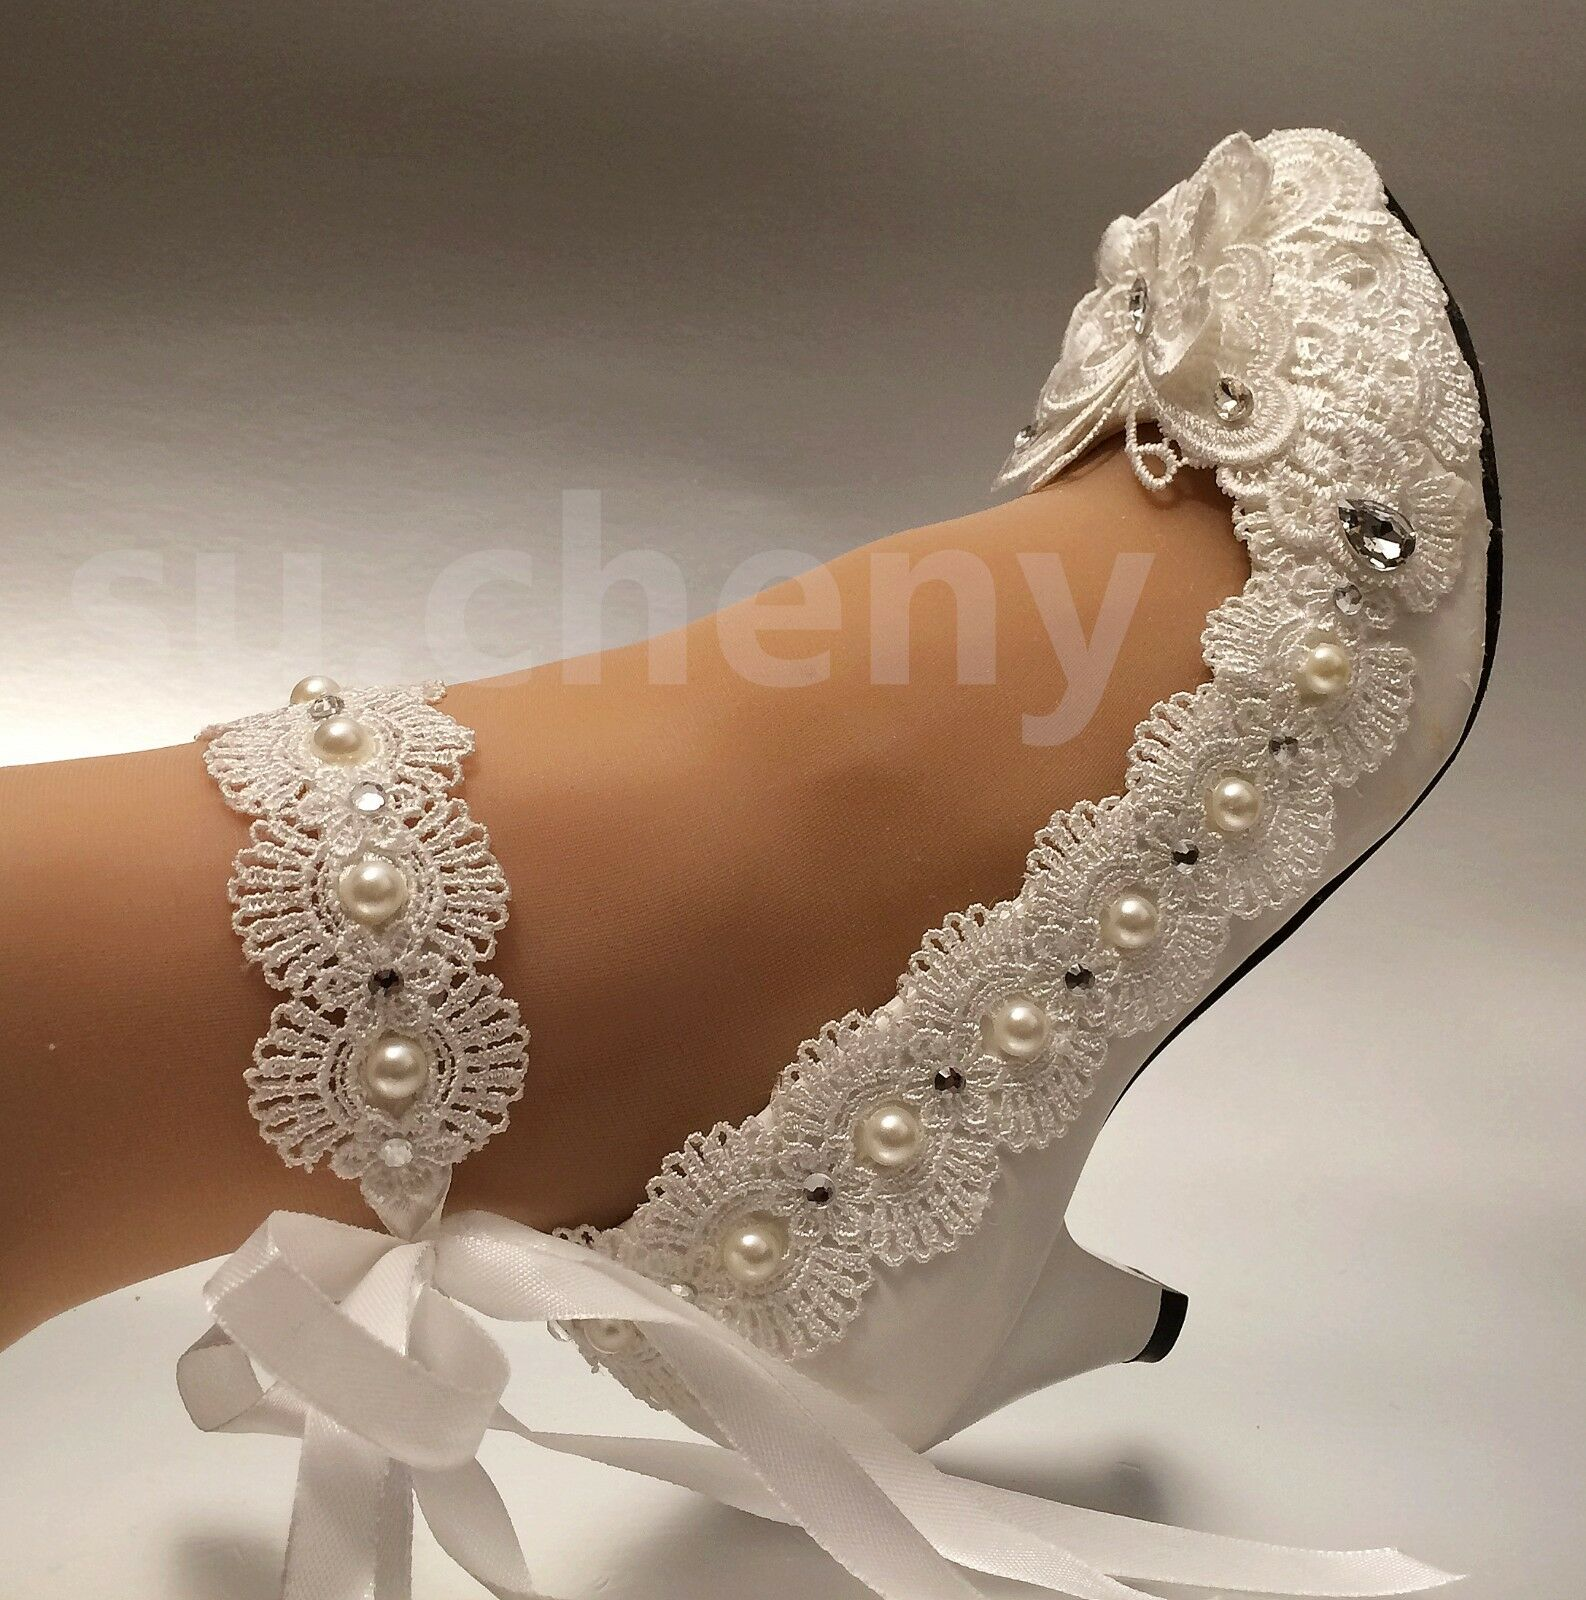 aa5fdb1913bd su.cheny White ivory heel lace bow crystal pearl Wedding shoes bride size 5-